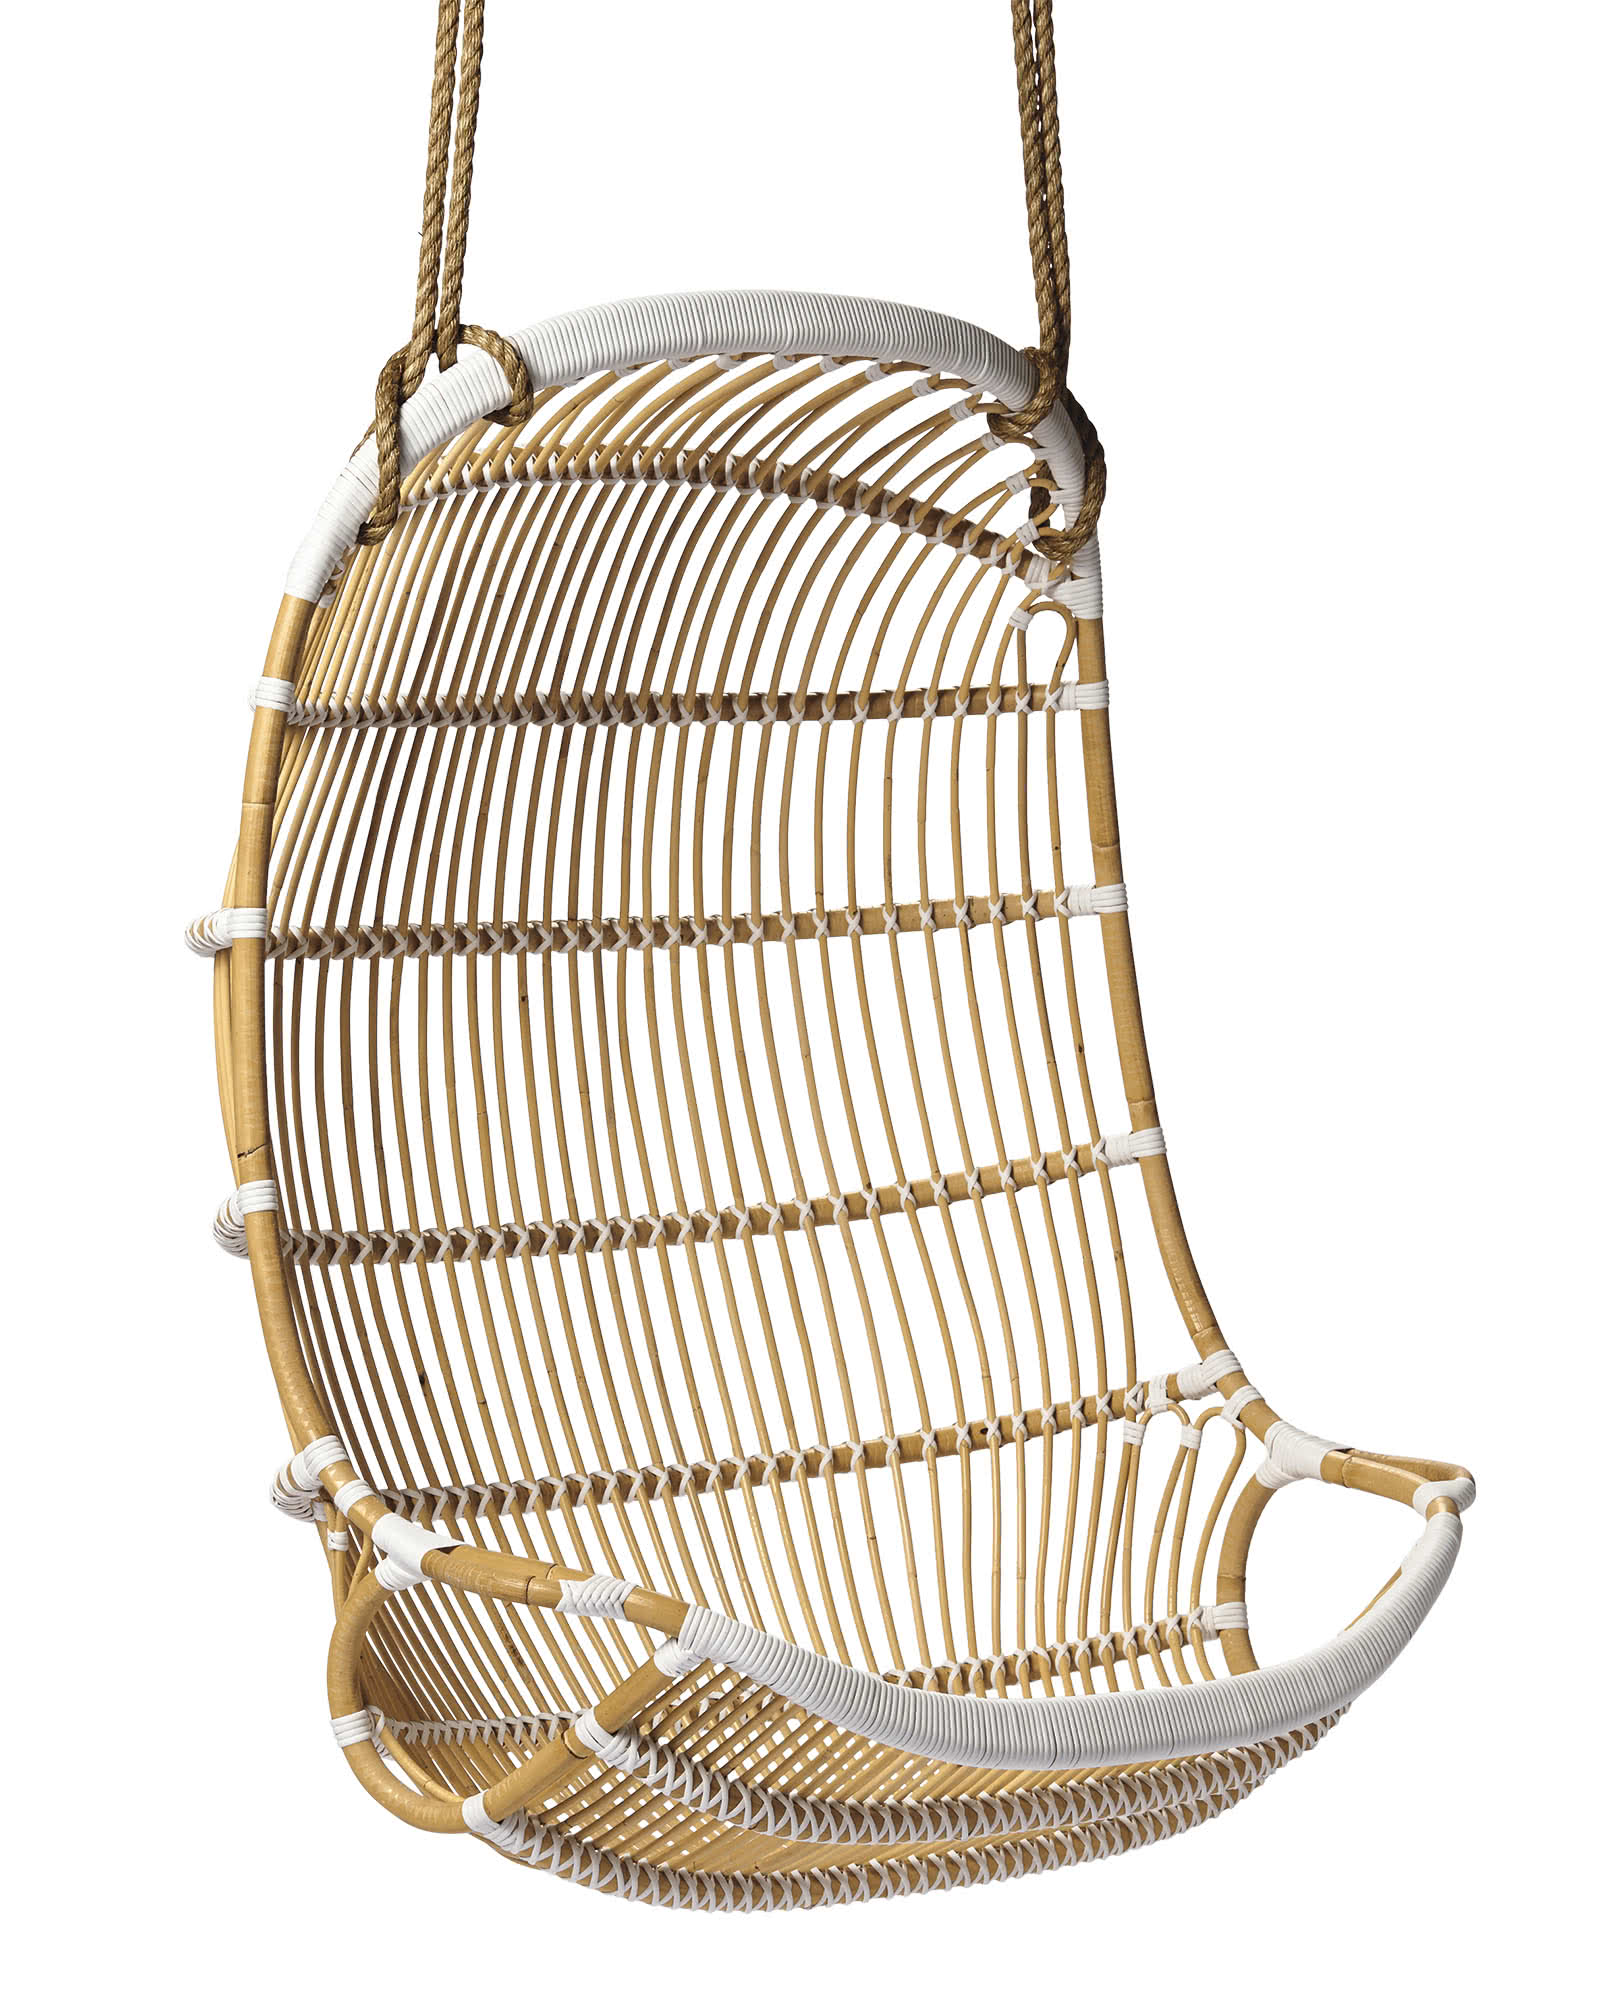 Hang Chair Double Hanging Rattan Chair Chairs Serena And Lily